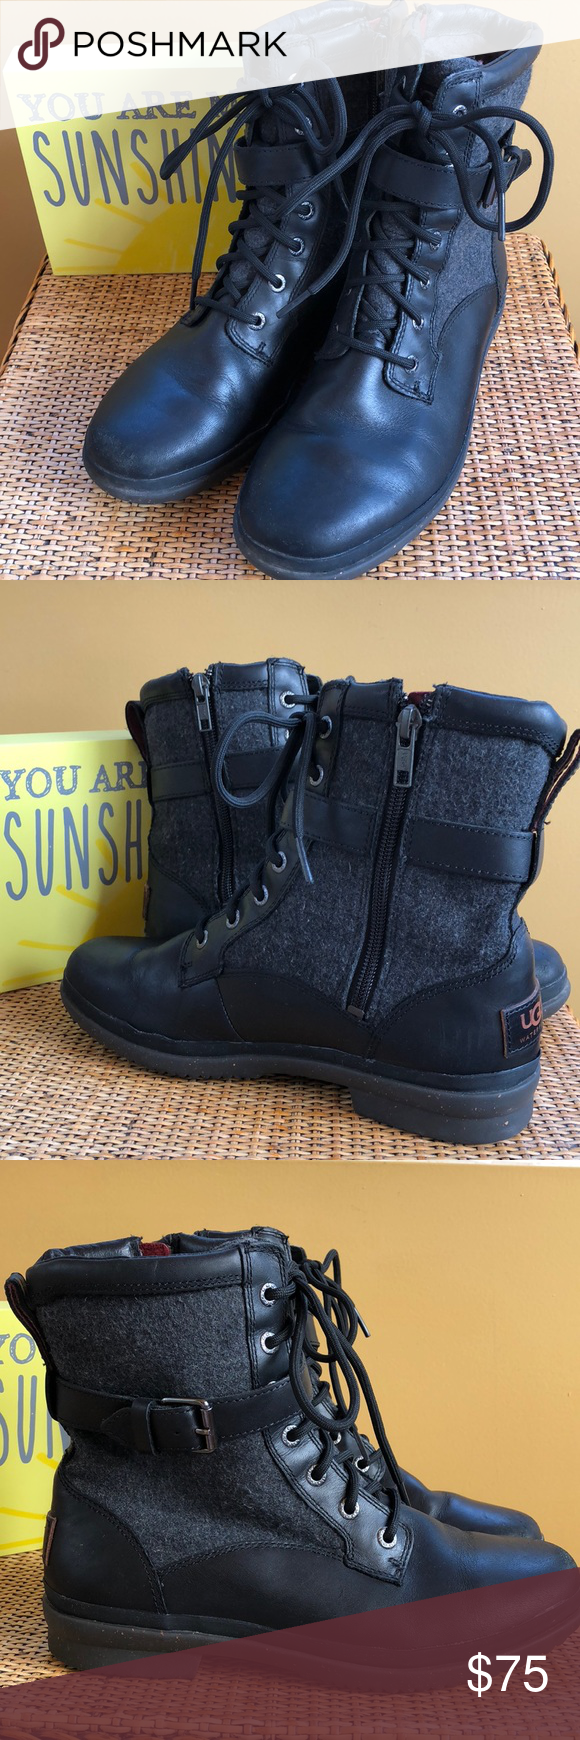 39b5b1700ee UGG COMBAT BOOTS SIZE 7 Kesey Waterproof Boot UGG COMBAT BOOTS SIZE ...